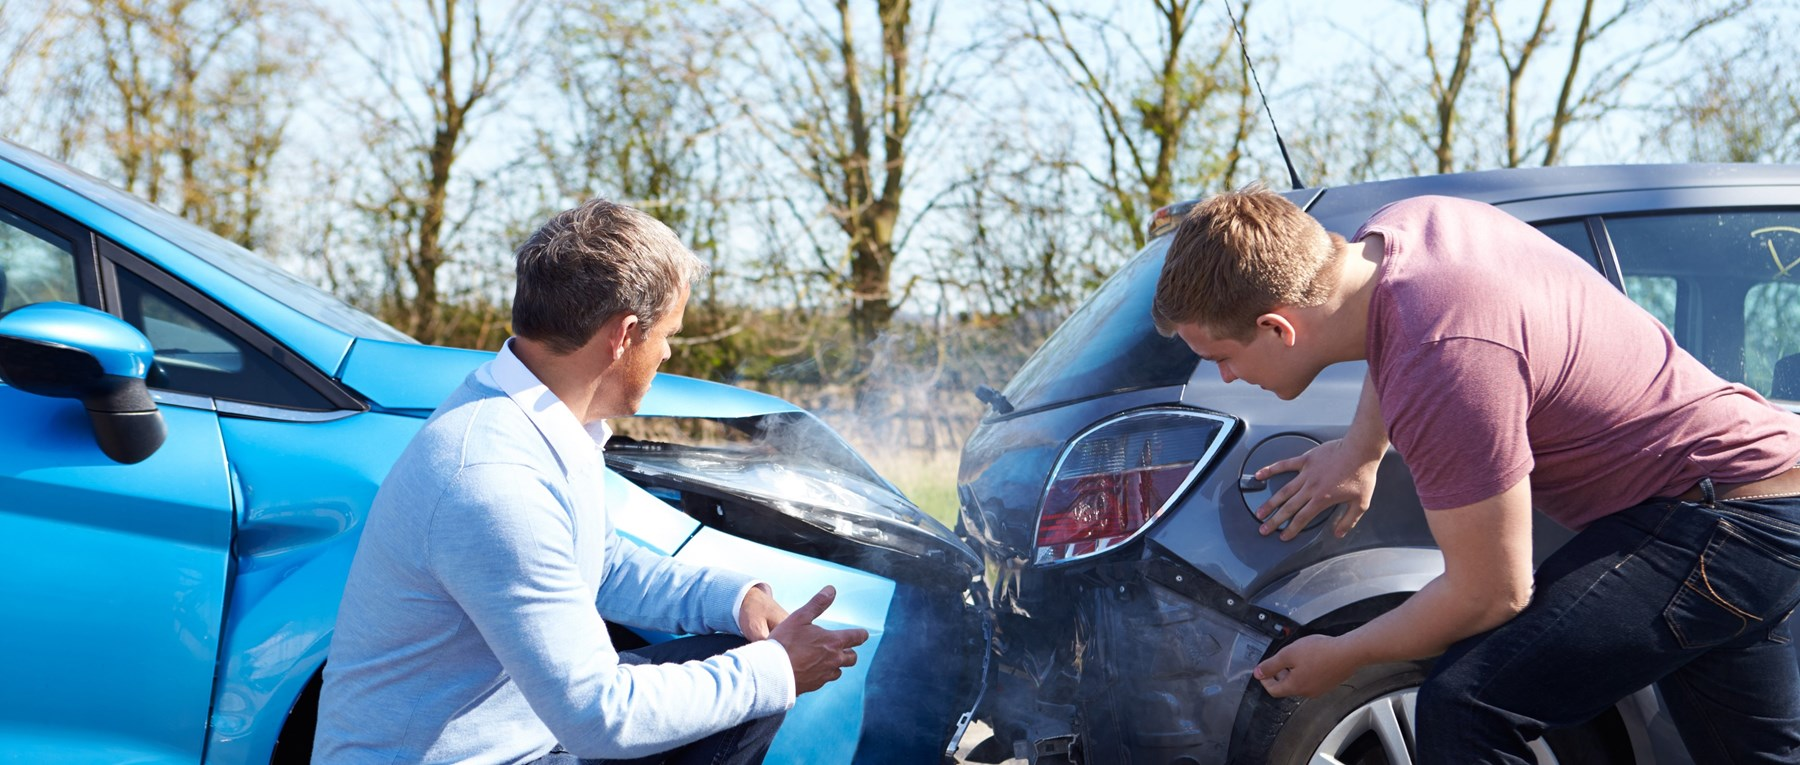 Two men looking at cars after collision